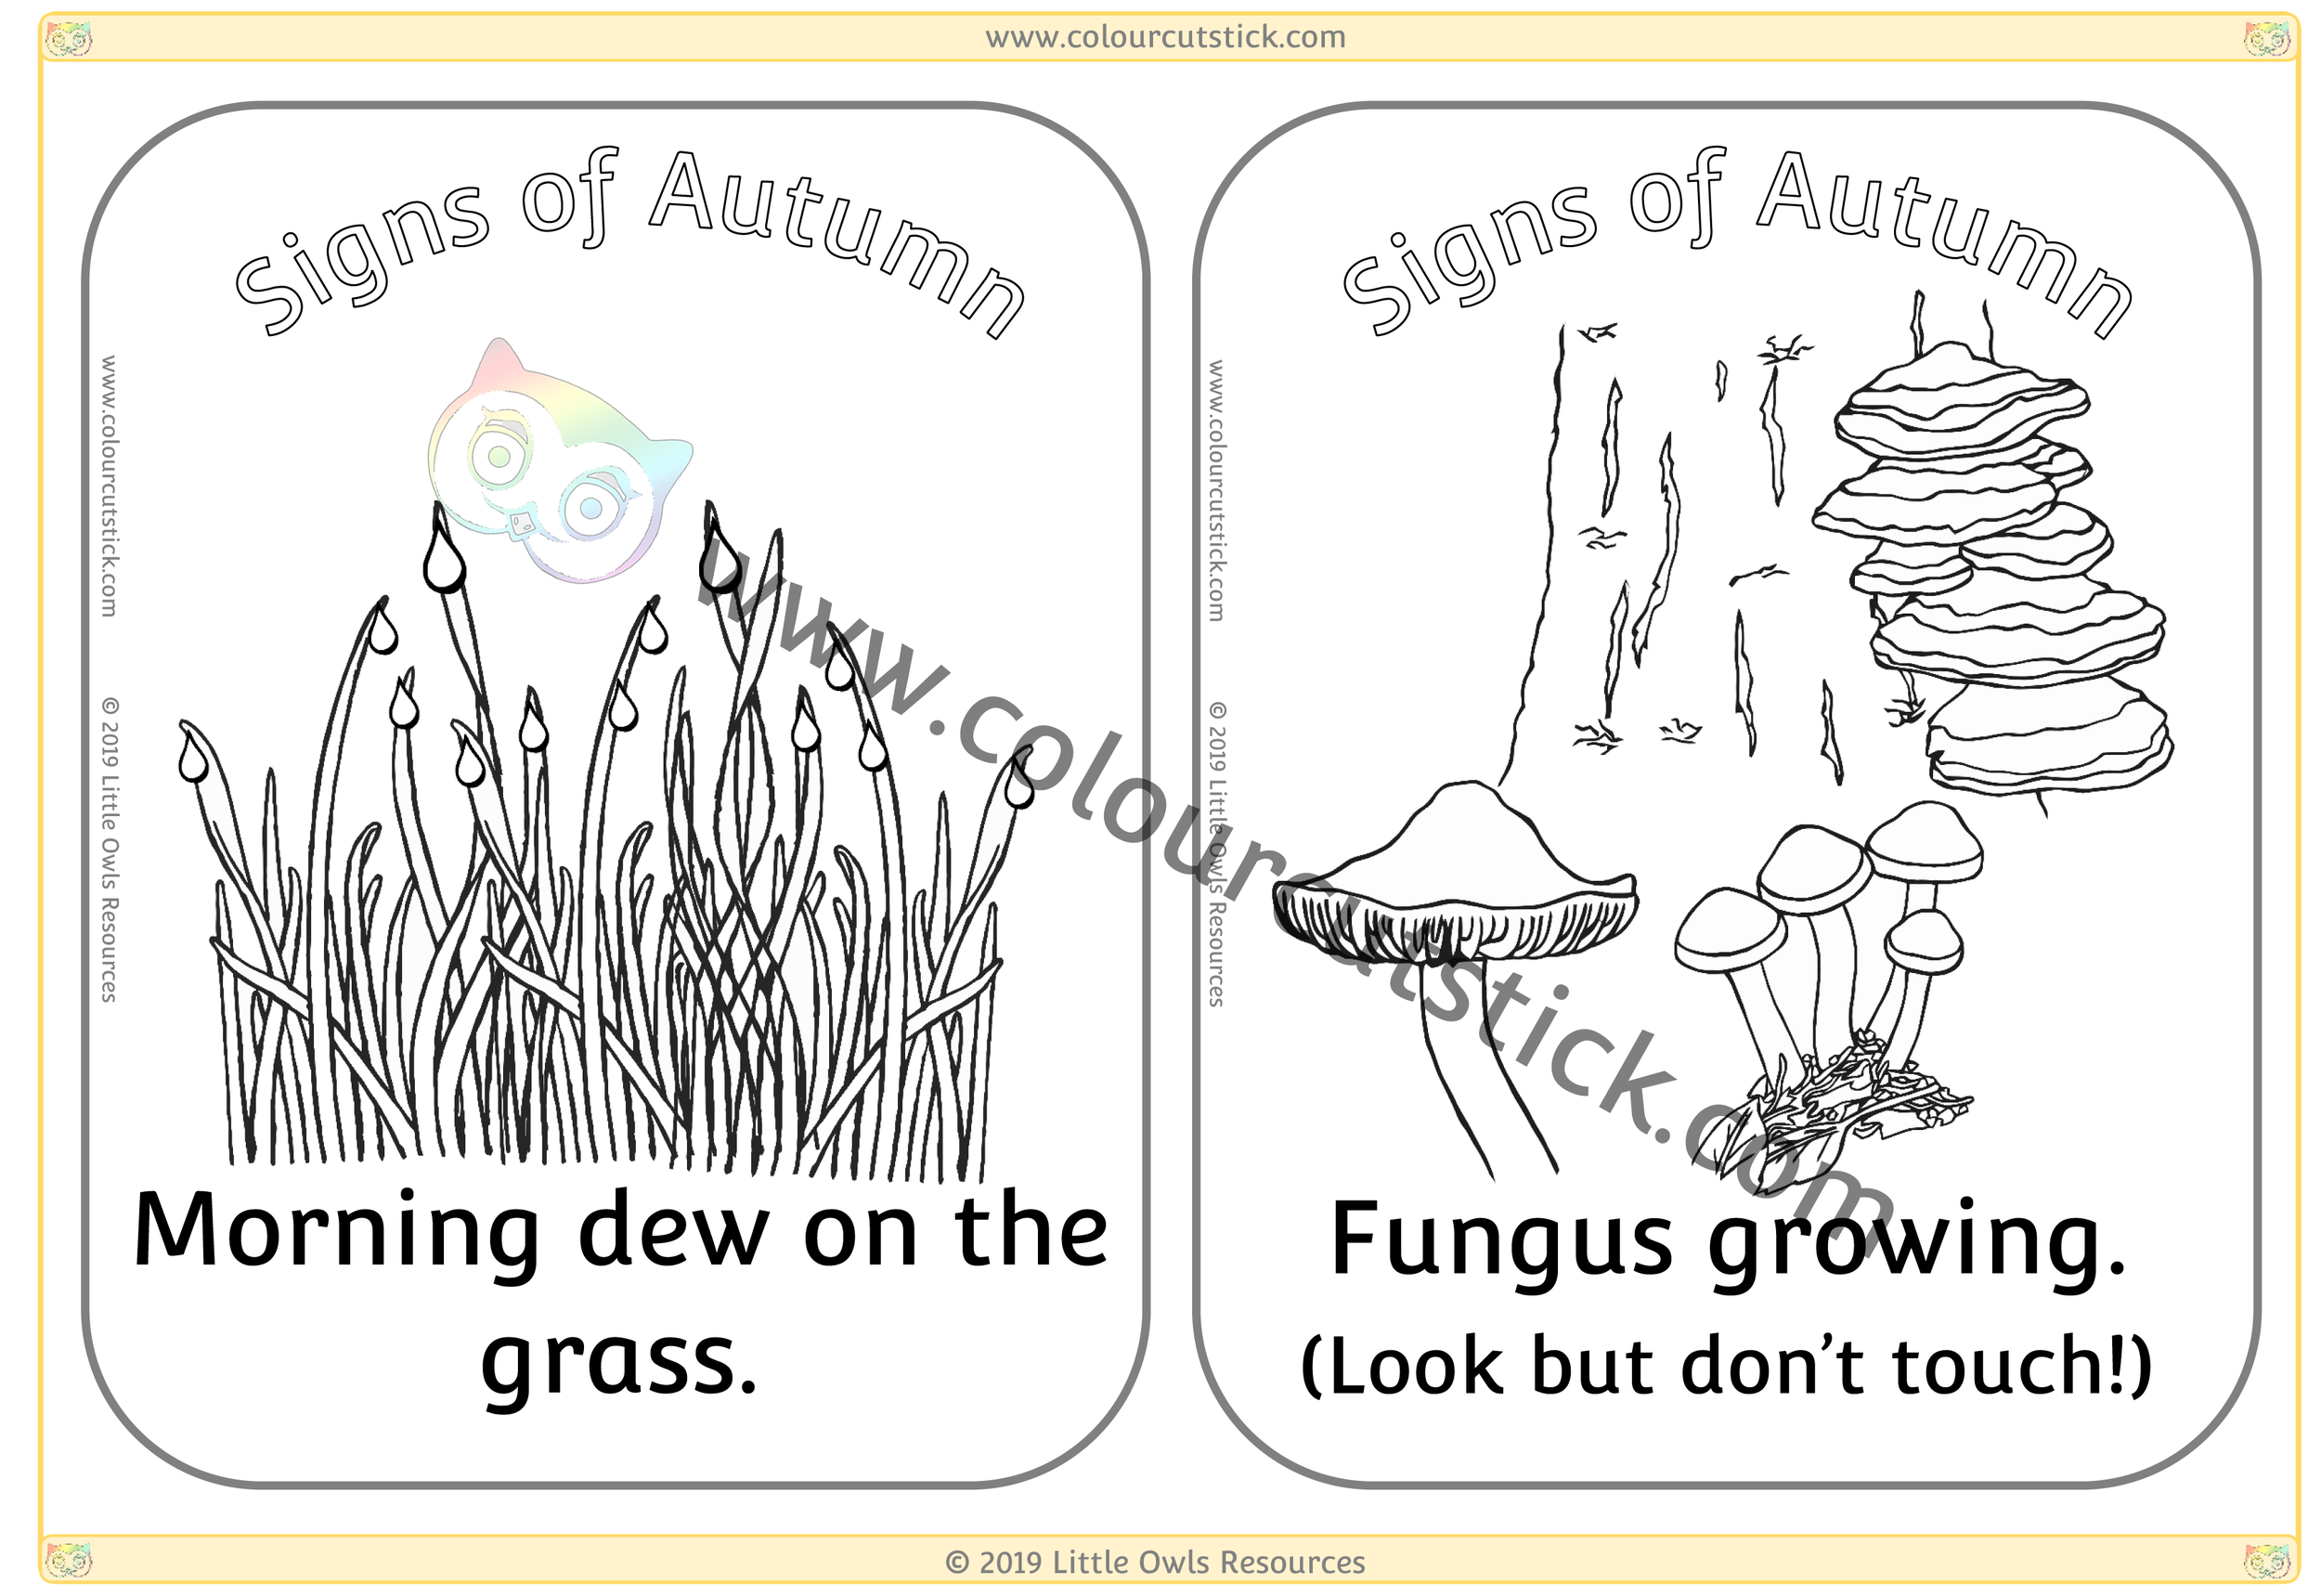 Morning dew on grass & Fungus growing -